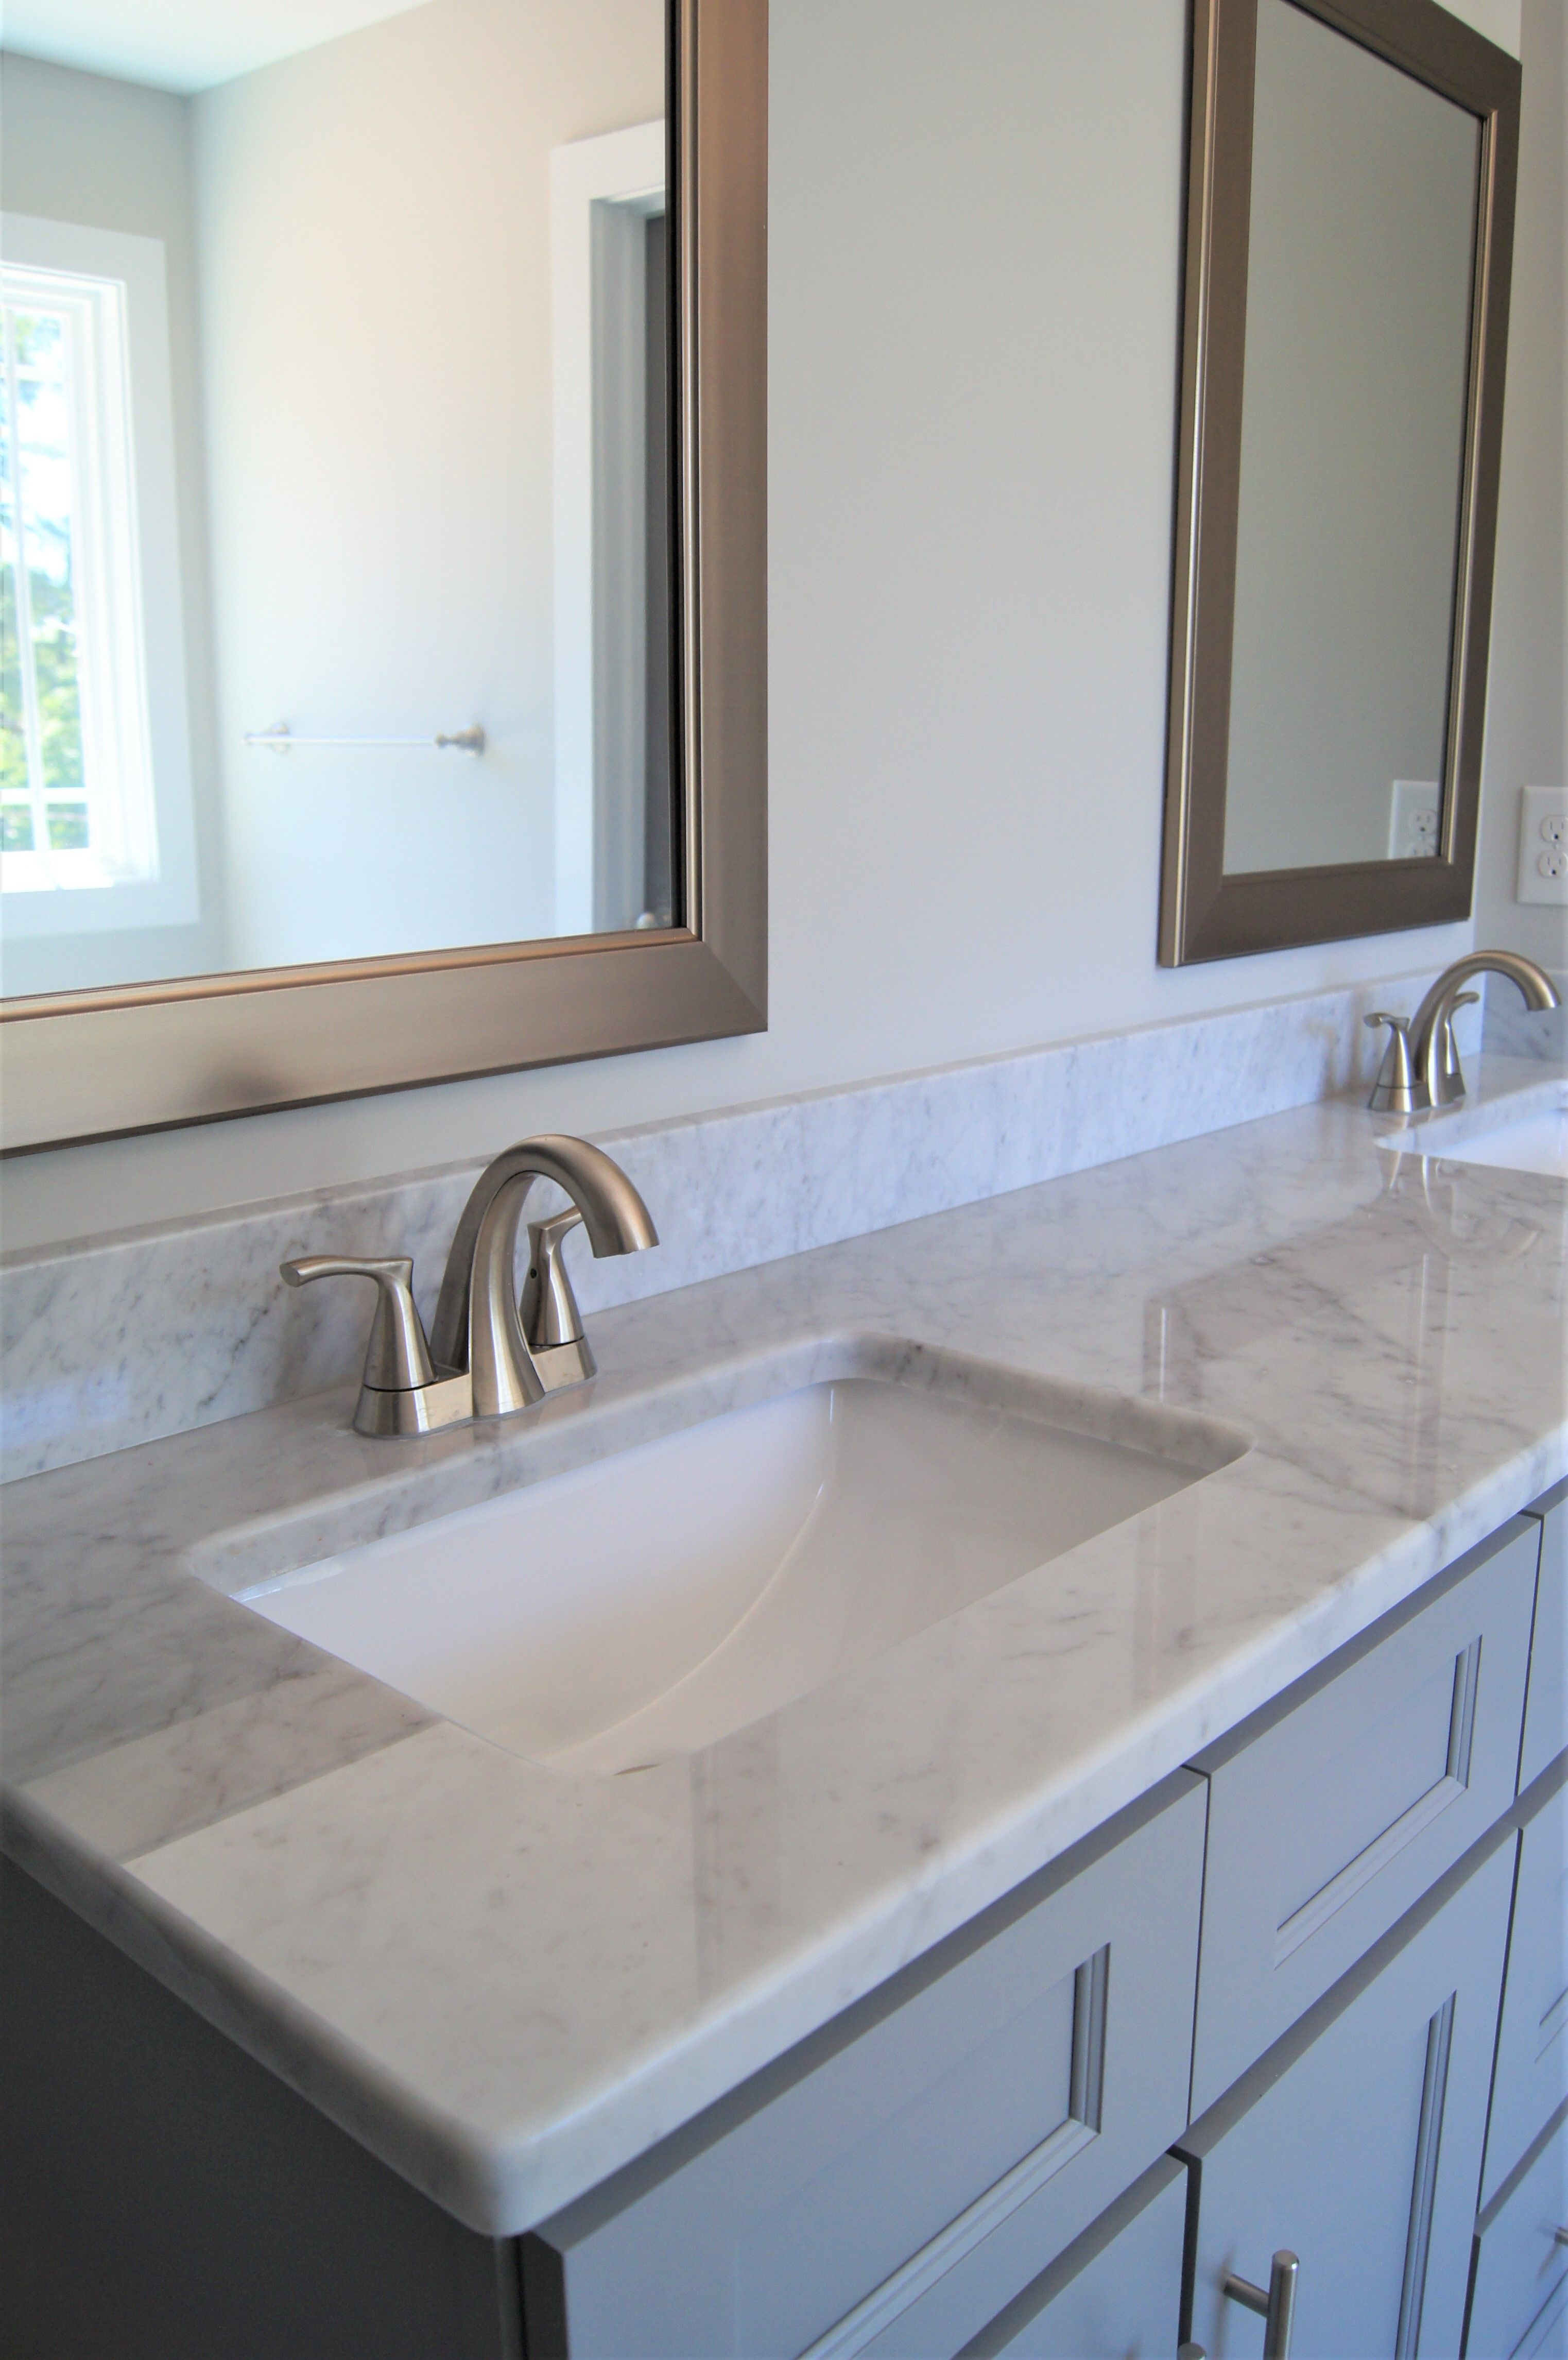 Gray Cabinets And White Natural Stone Counter Tops Are The Latest